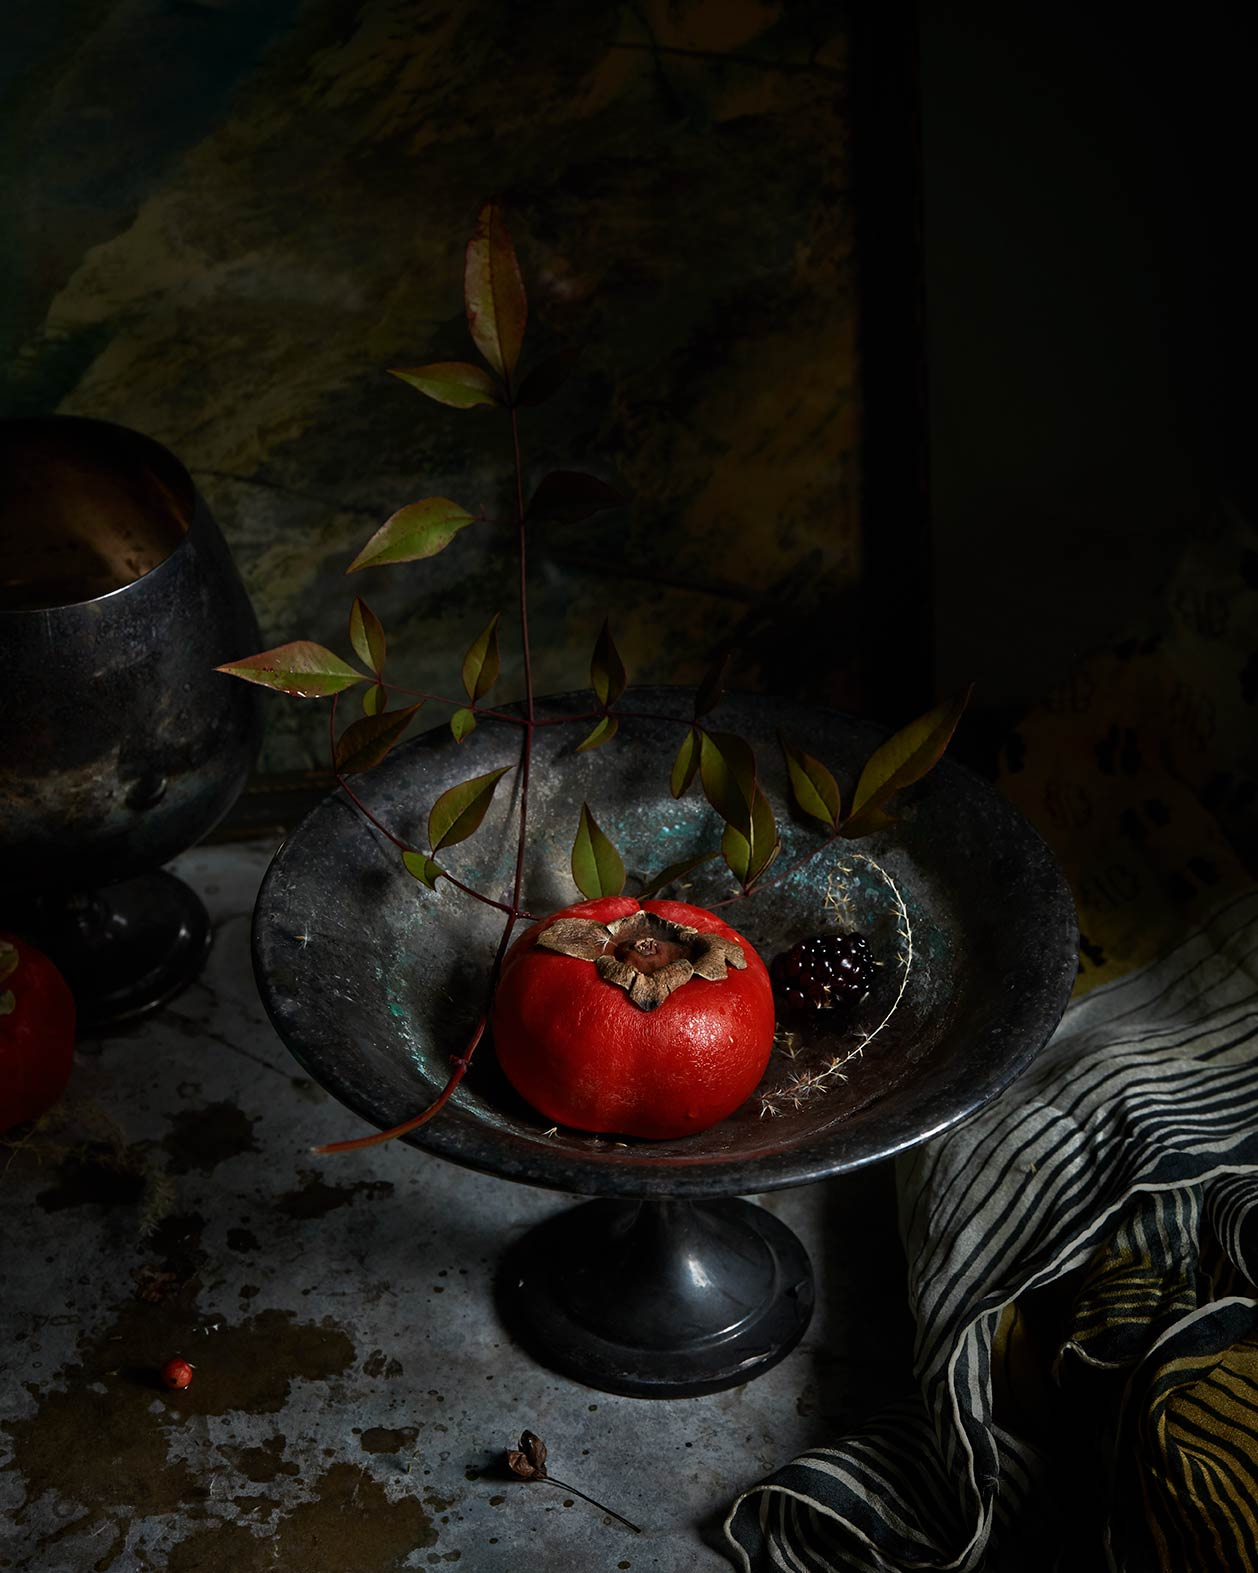 Dark still life photo featuring fruit and old props.